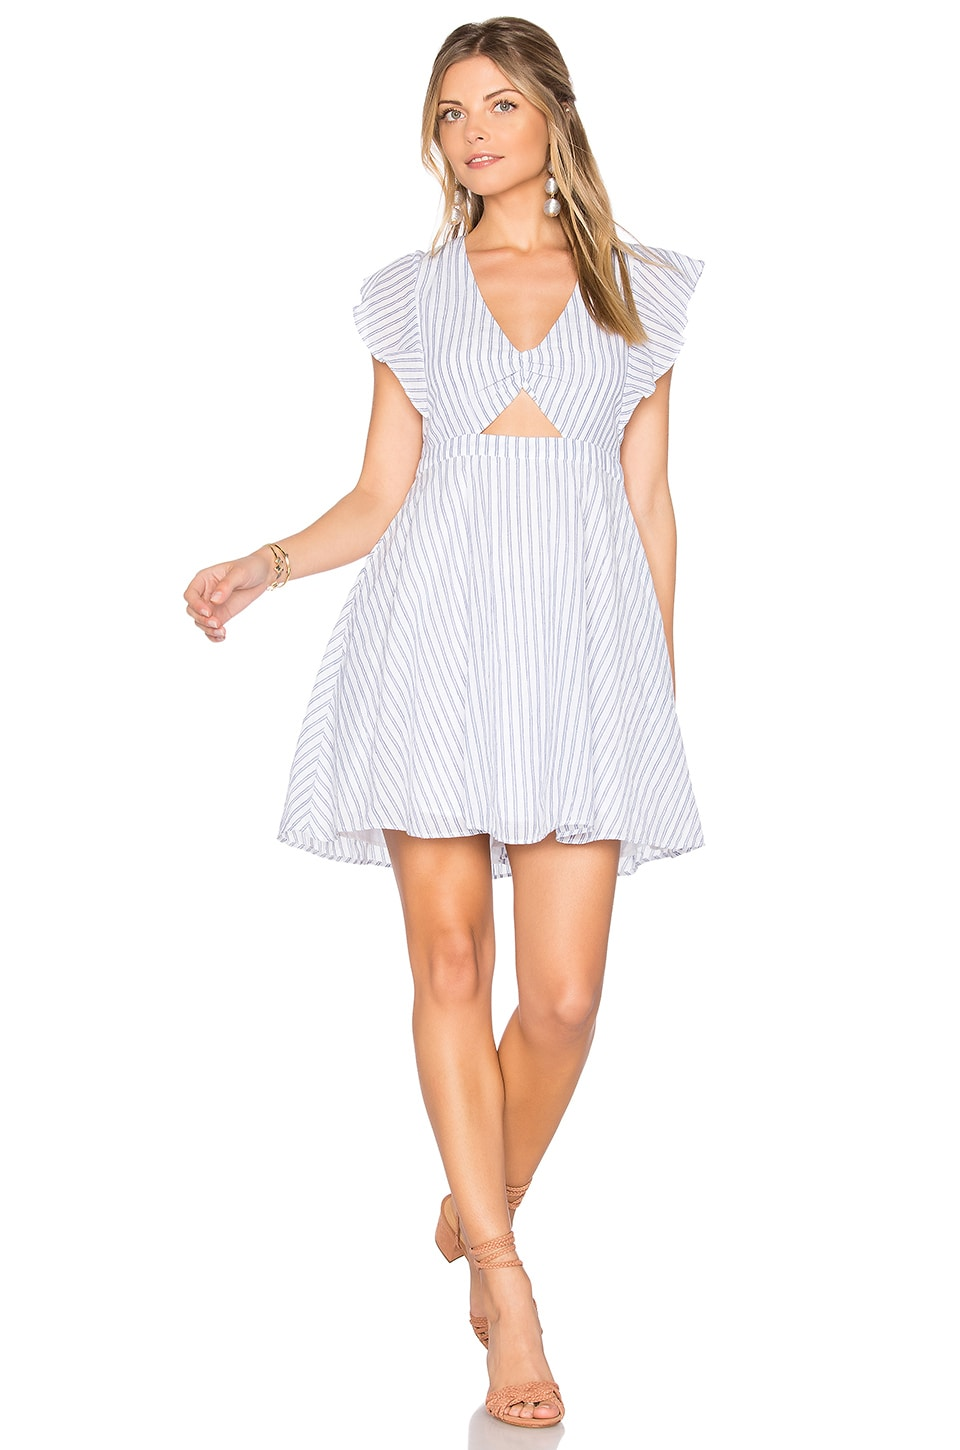 Cleobella Nieve Dress in Trinidad Stripe